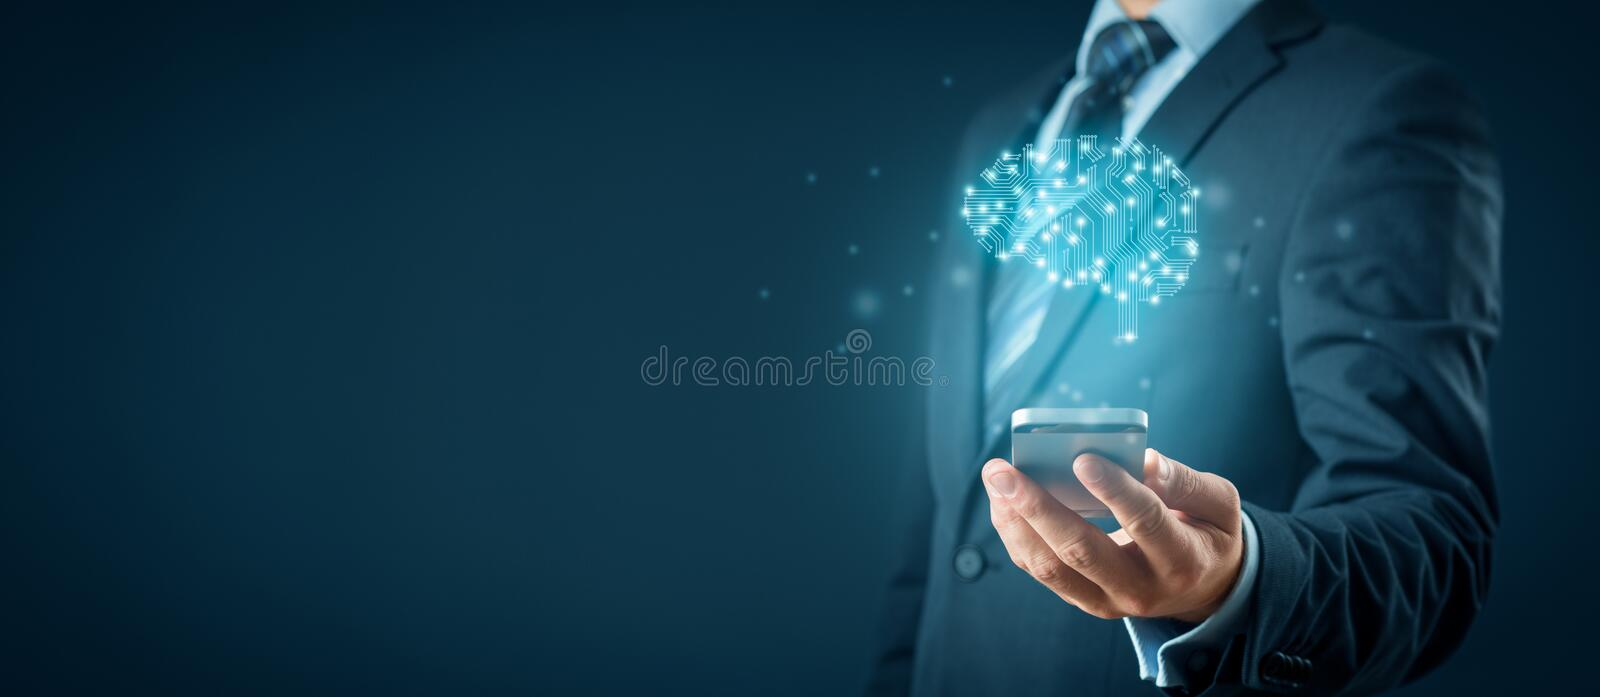 Artificial intelligence on smart phone. Artificial intelligence AI, machine deep learning, data mining, and another modern computer technologies concepts. Brain royalty free stock image